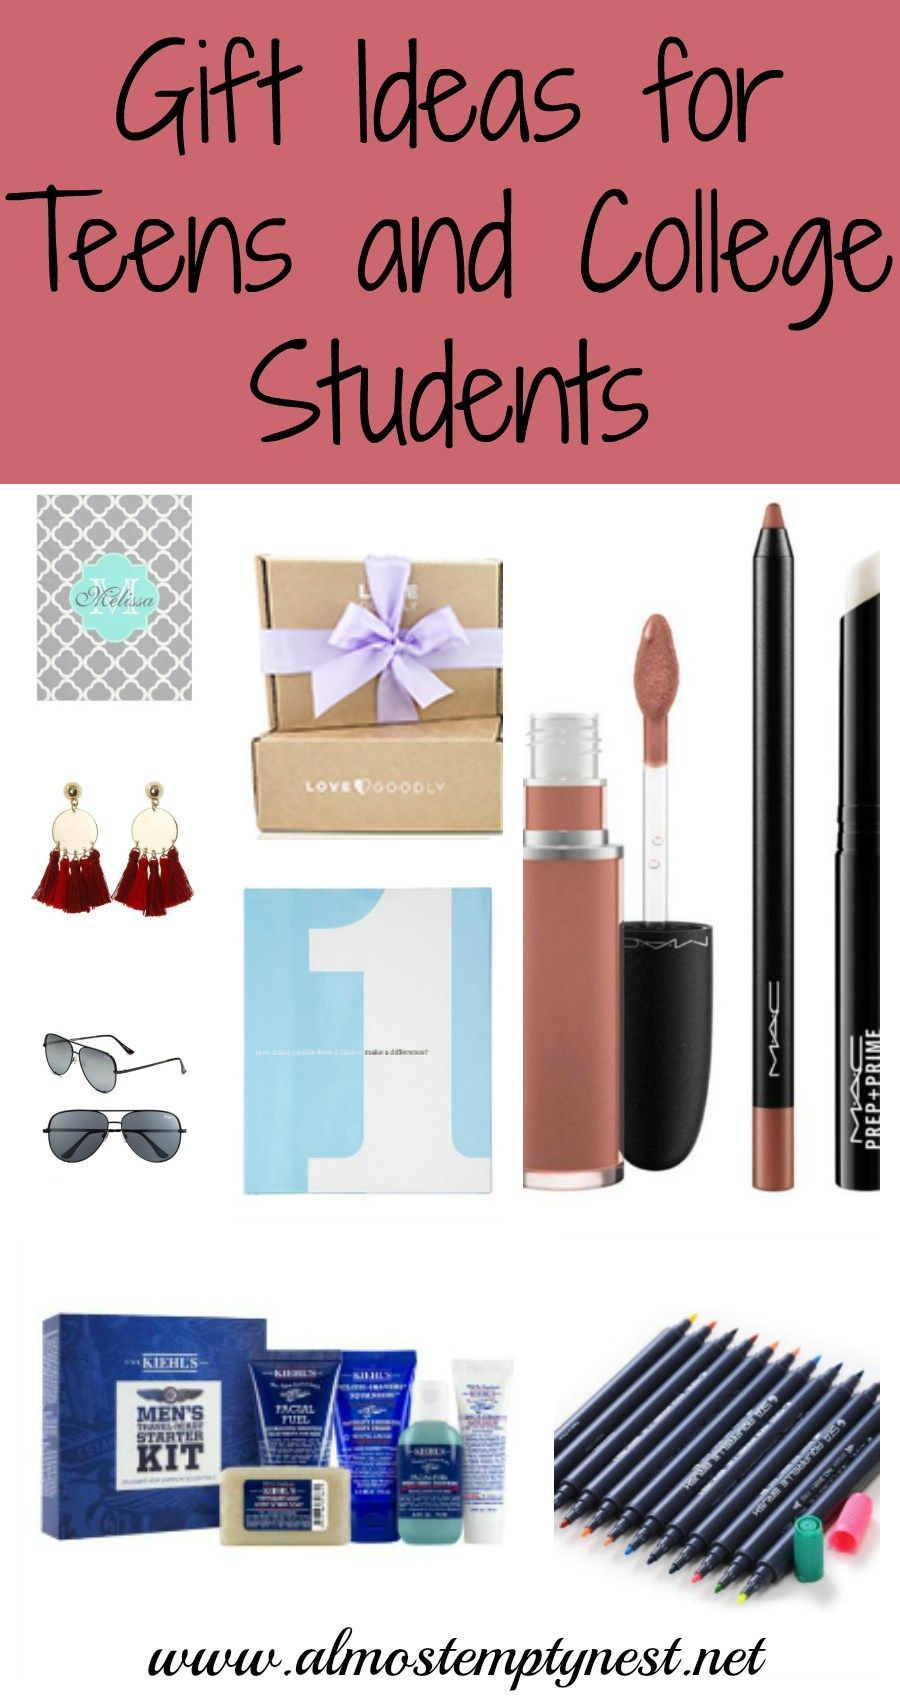 Gift Ideas for Teens and College Students College Teen and Students